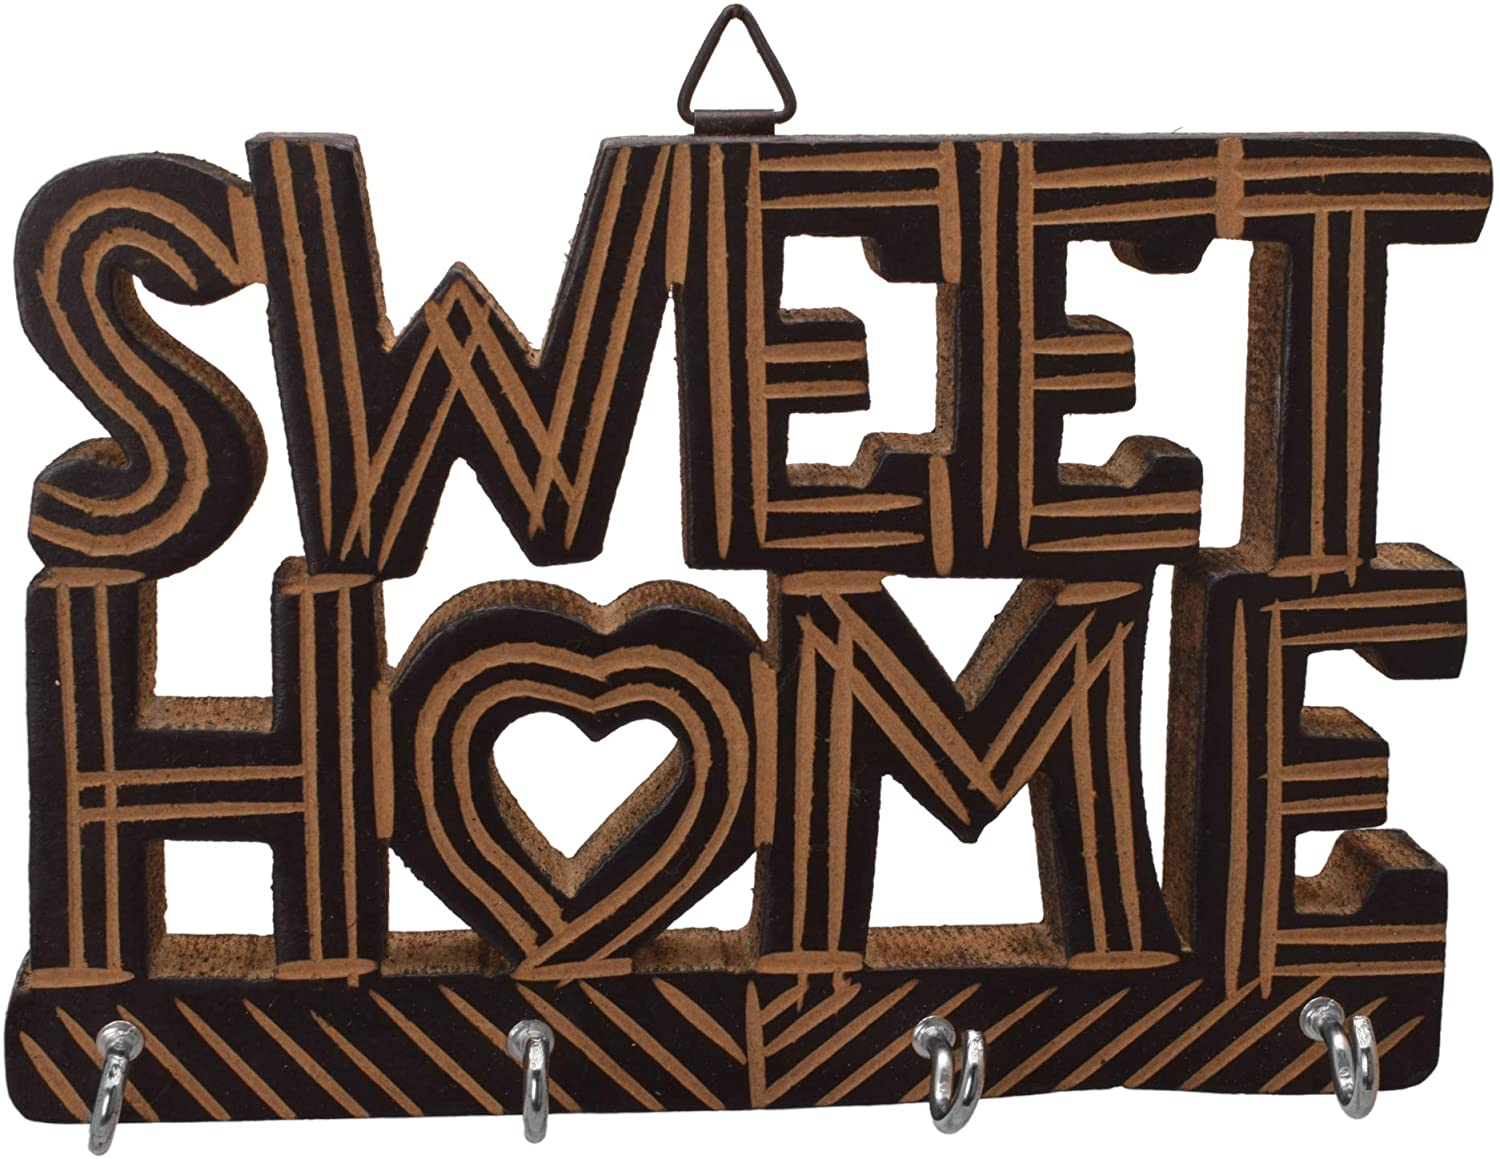 diollo Wooden Sweet Family Wall Mountain Key Holder with 4 Hooks for Home Décor-17x5x12cm,